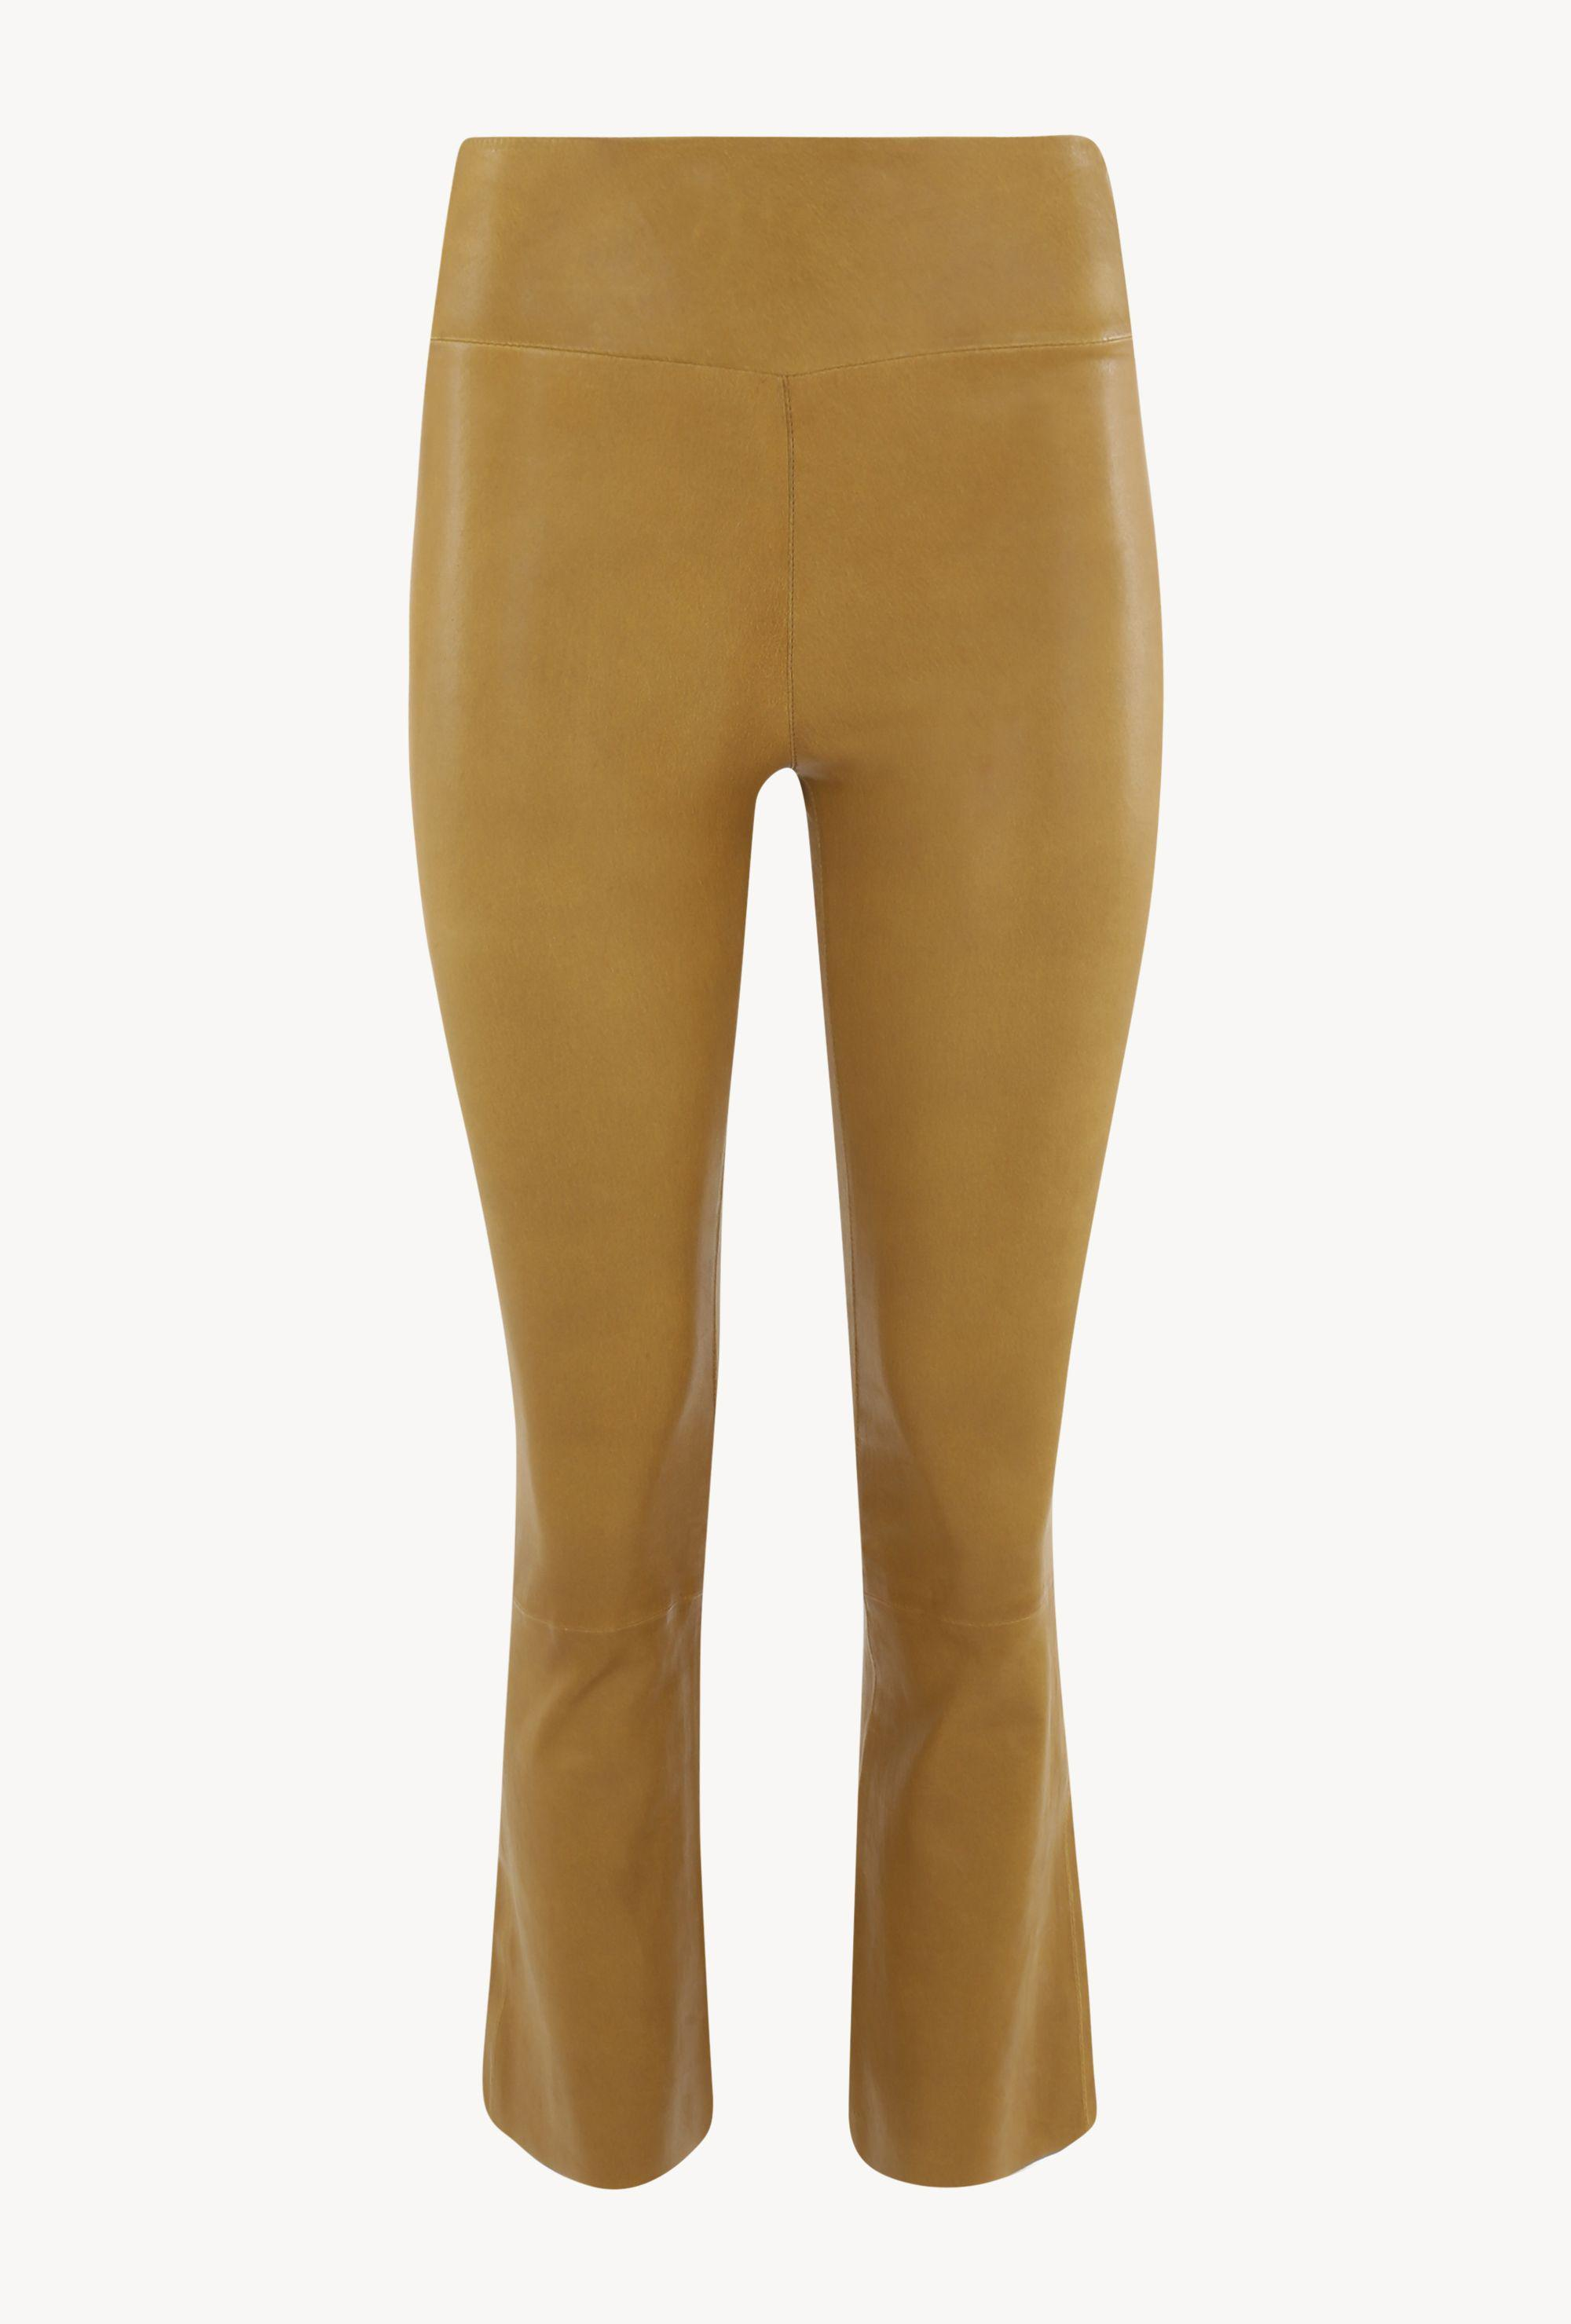 Moss Gold Leather Crop Flare Leggings